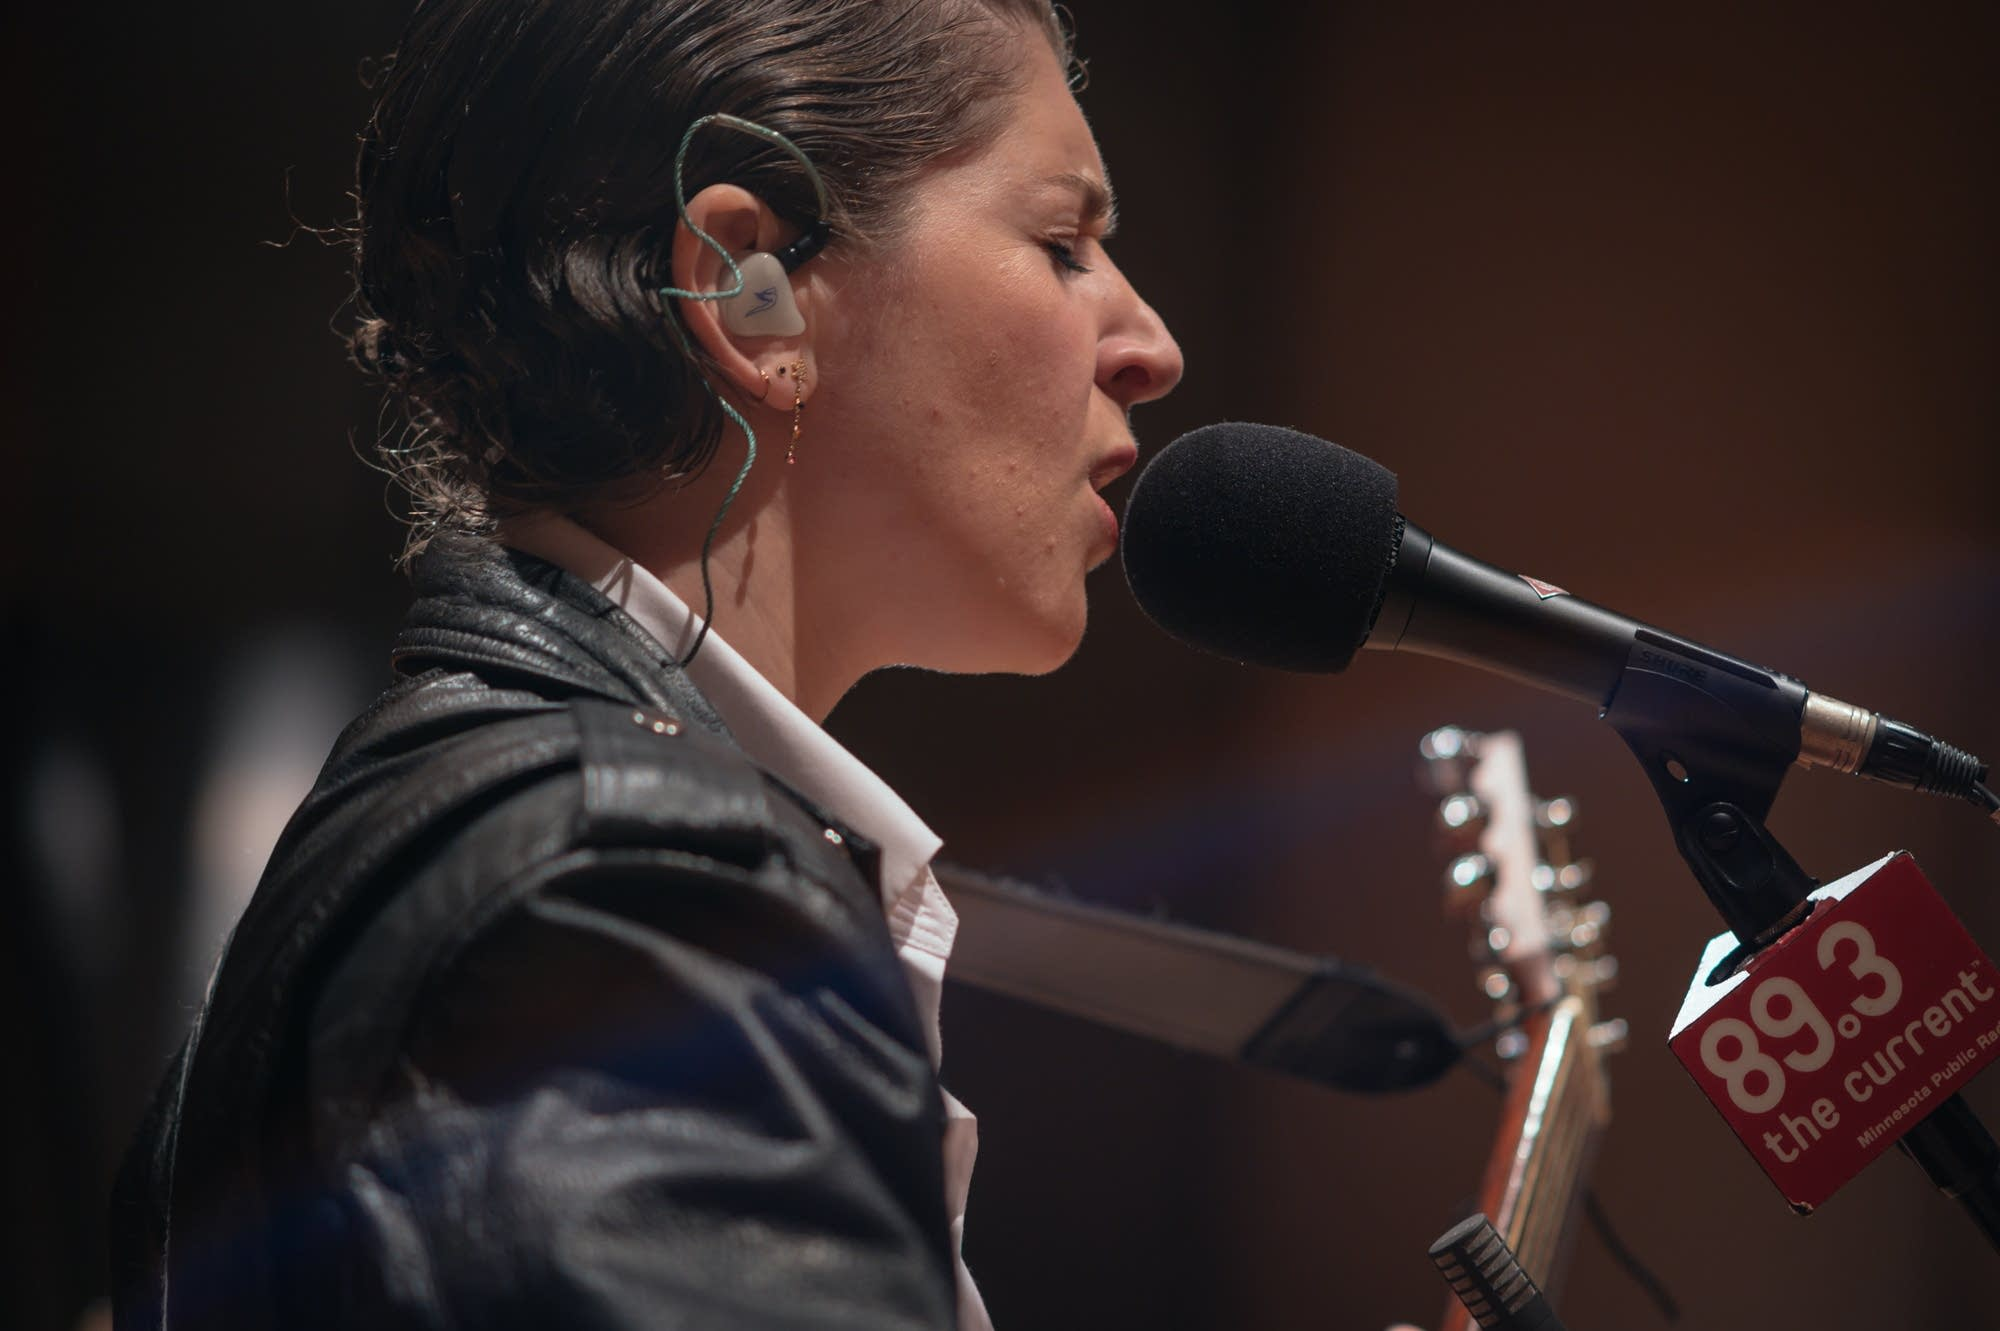 Overcoats perform in The Current studio